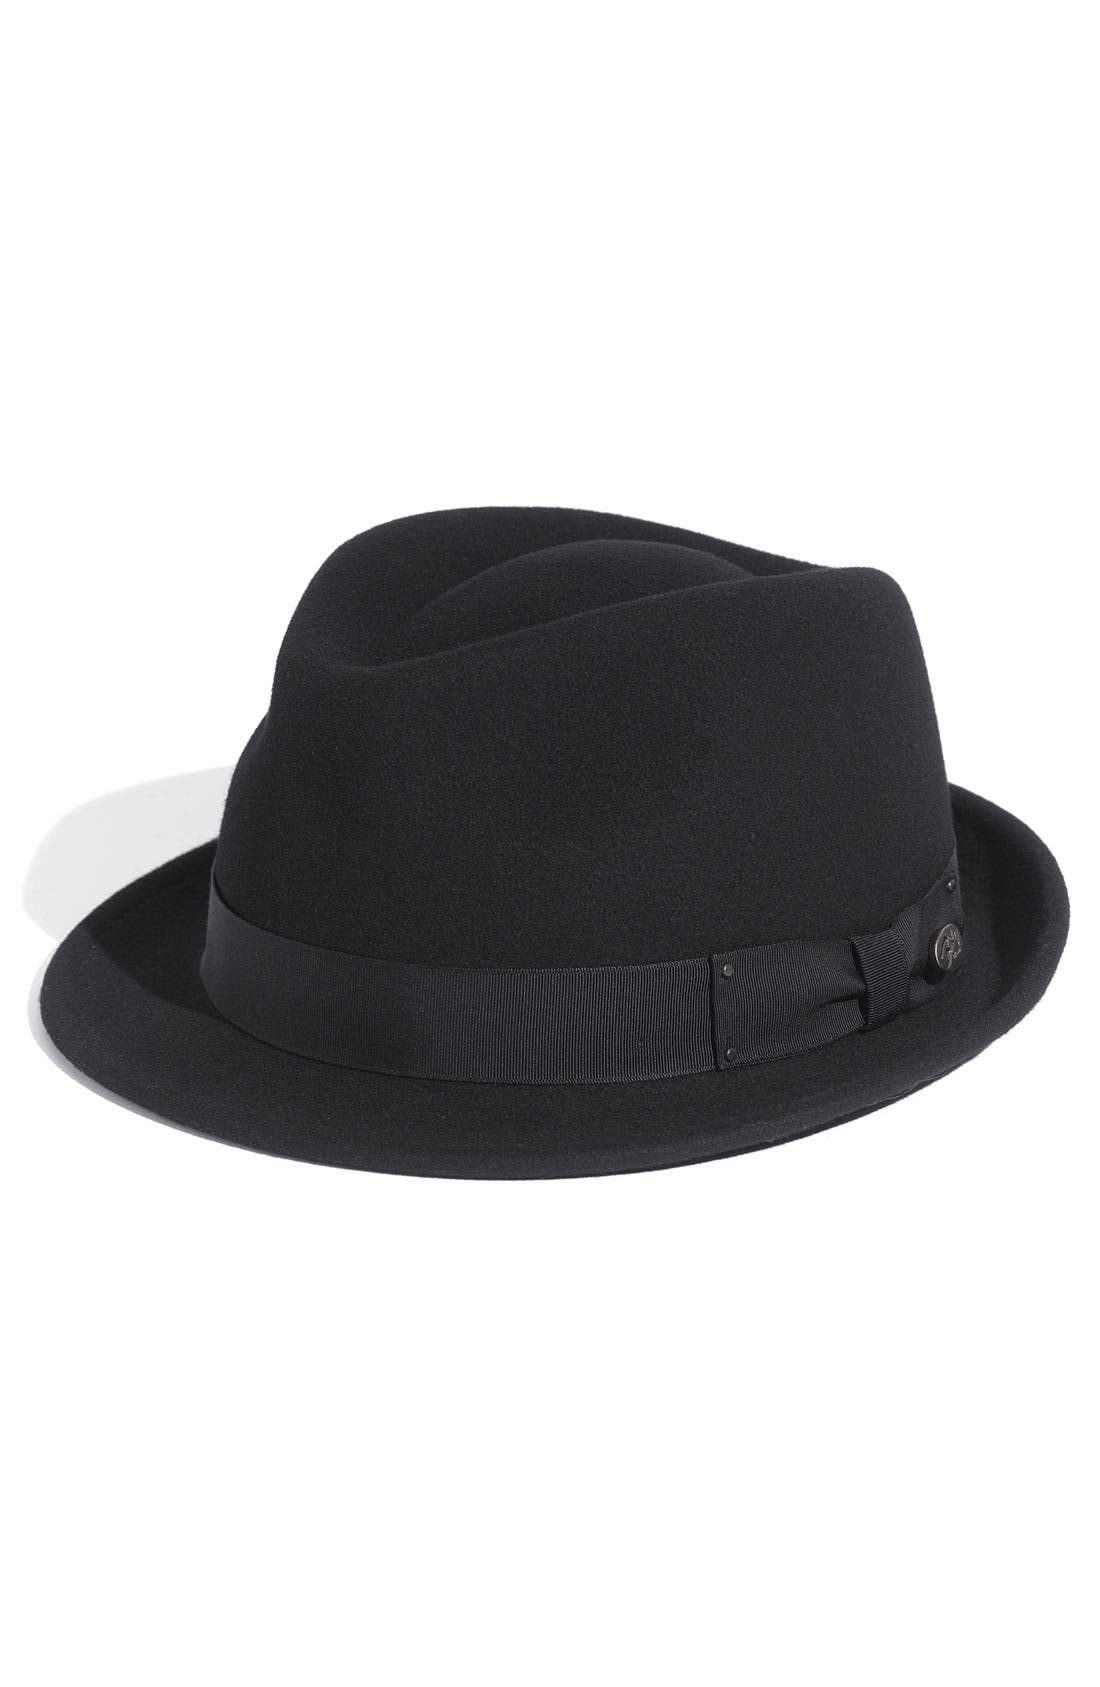 'Wynn' Packable Fedora,                         Main,                         color,